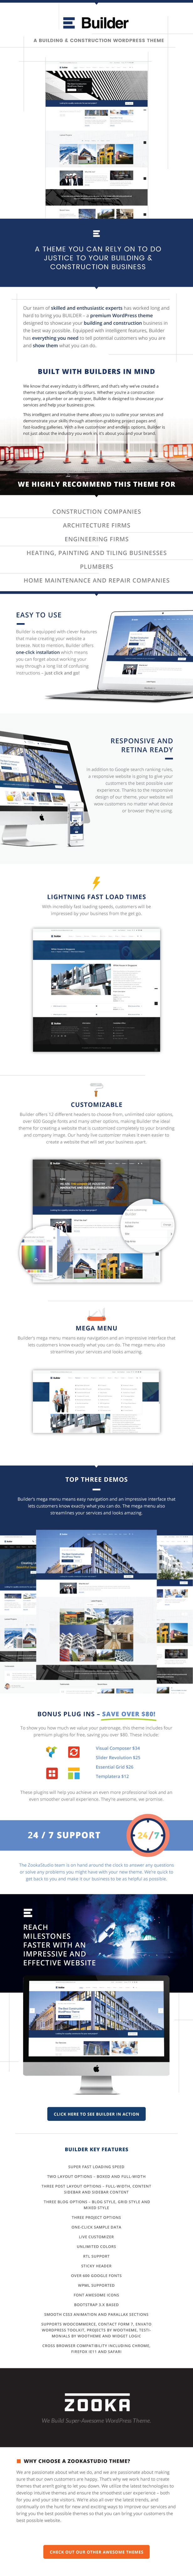 Building & Construction WordPress Theme - Builder